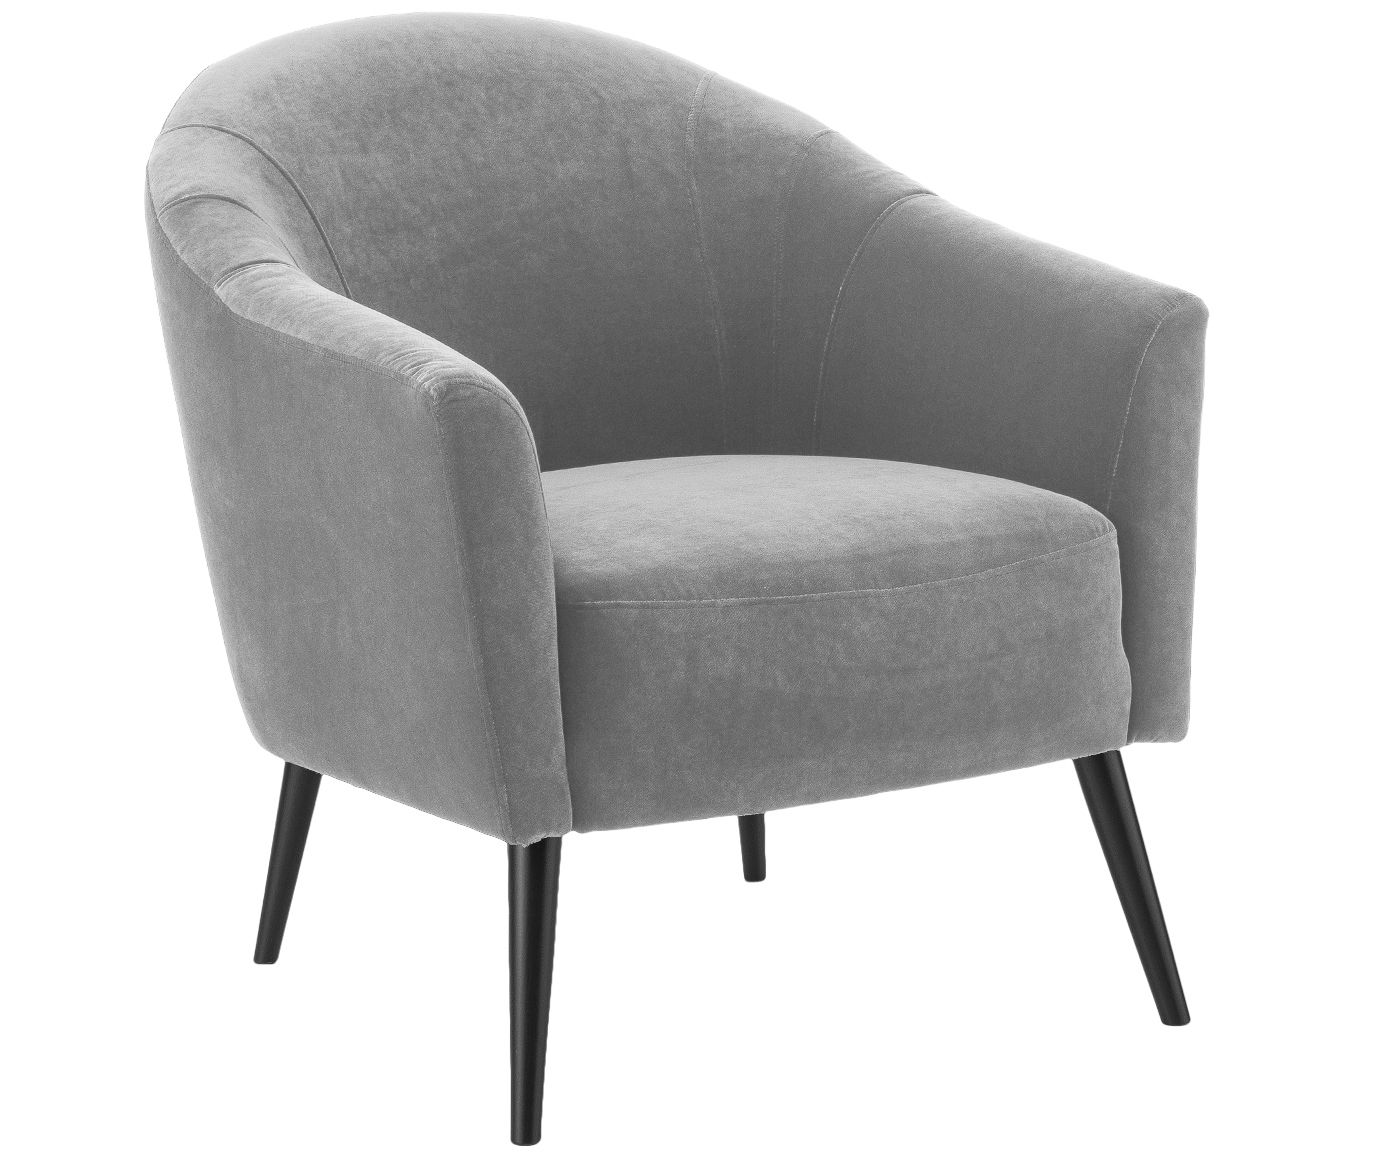 Samt Sessel Pascall In Grau Aus Samt Von Westwing Collection Online Kaufen Gratis Versand Ab 30 100 Tage Ruckgabe Westwin Samt Sessel Cocktailsessel Sessel